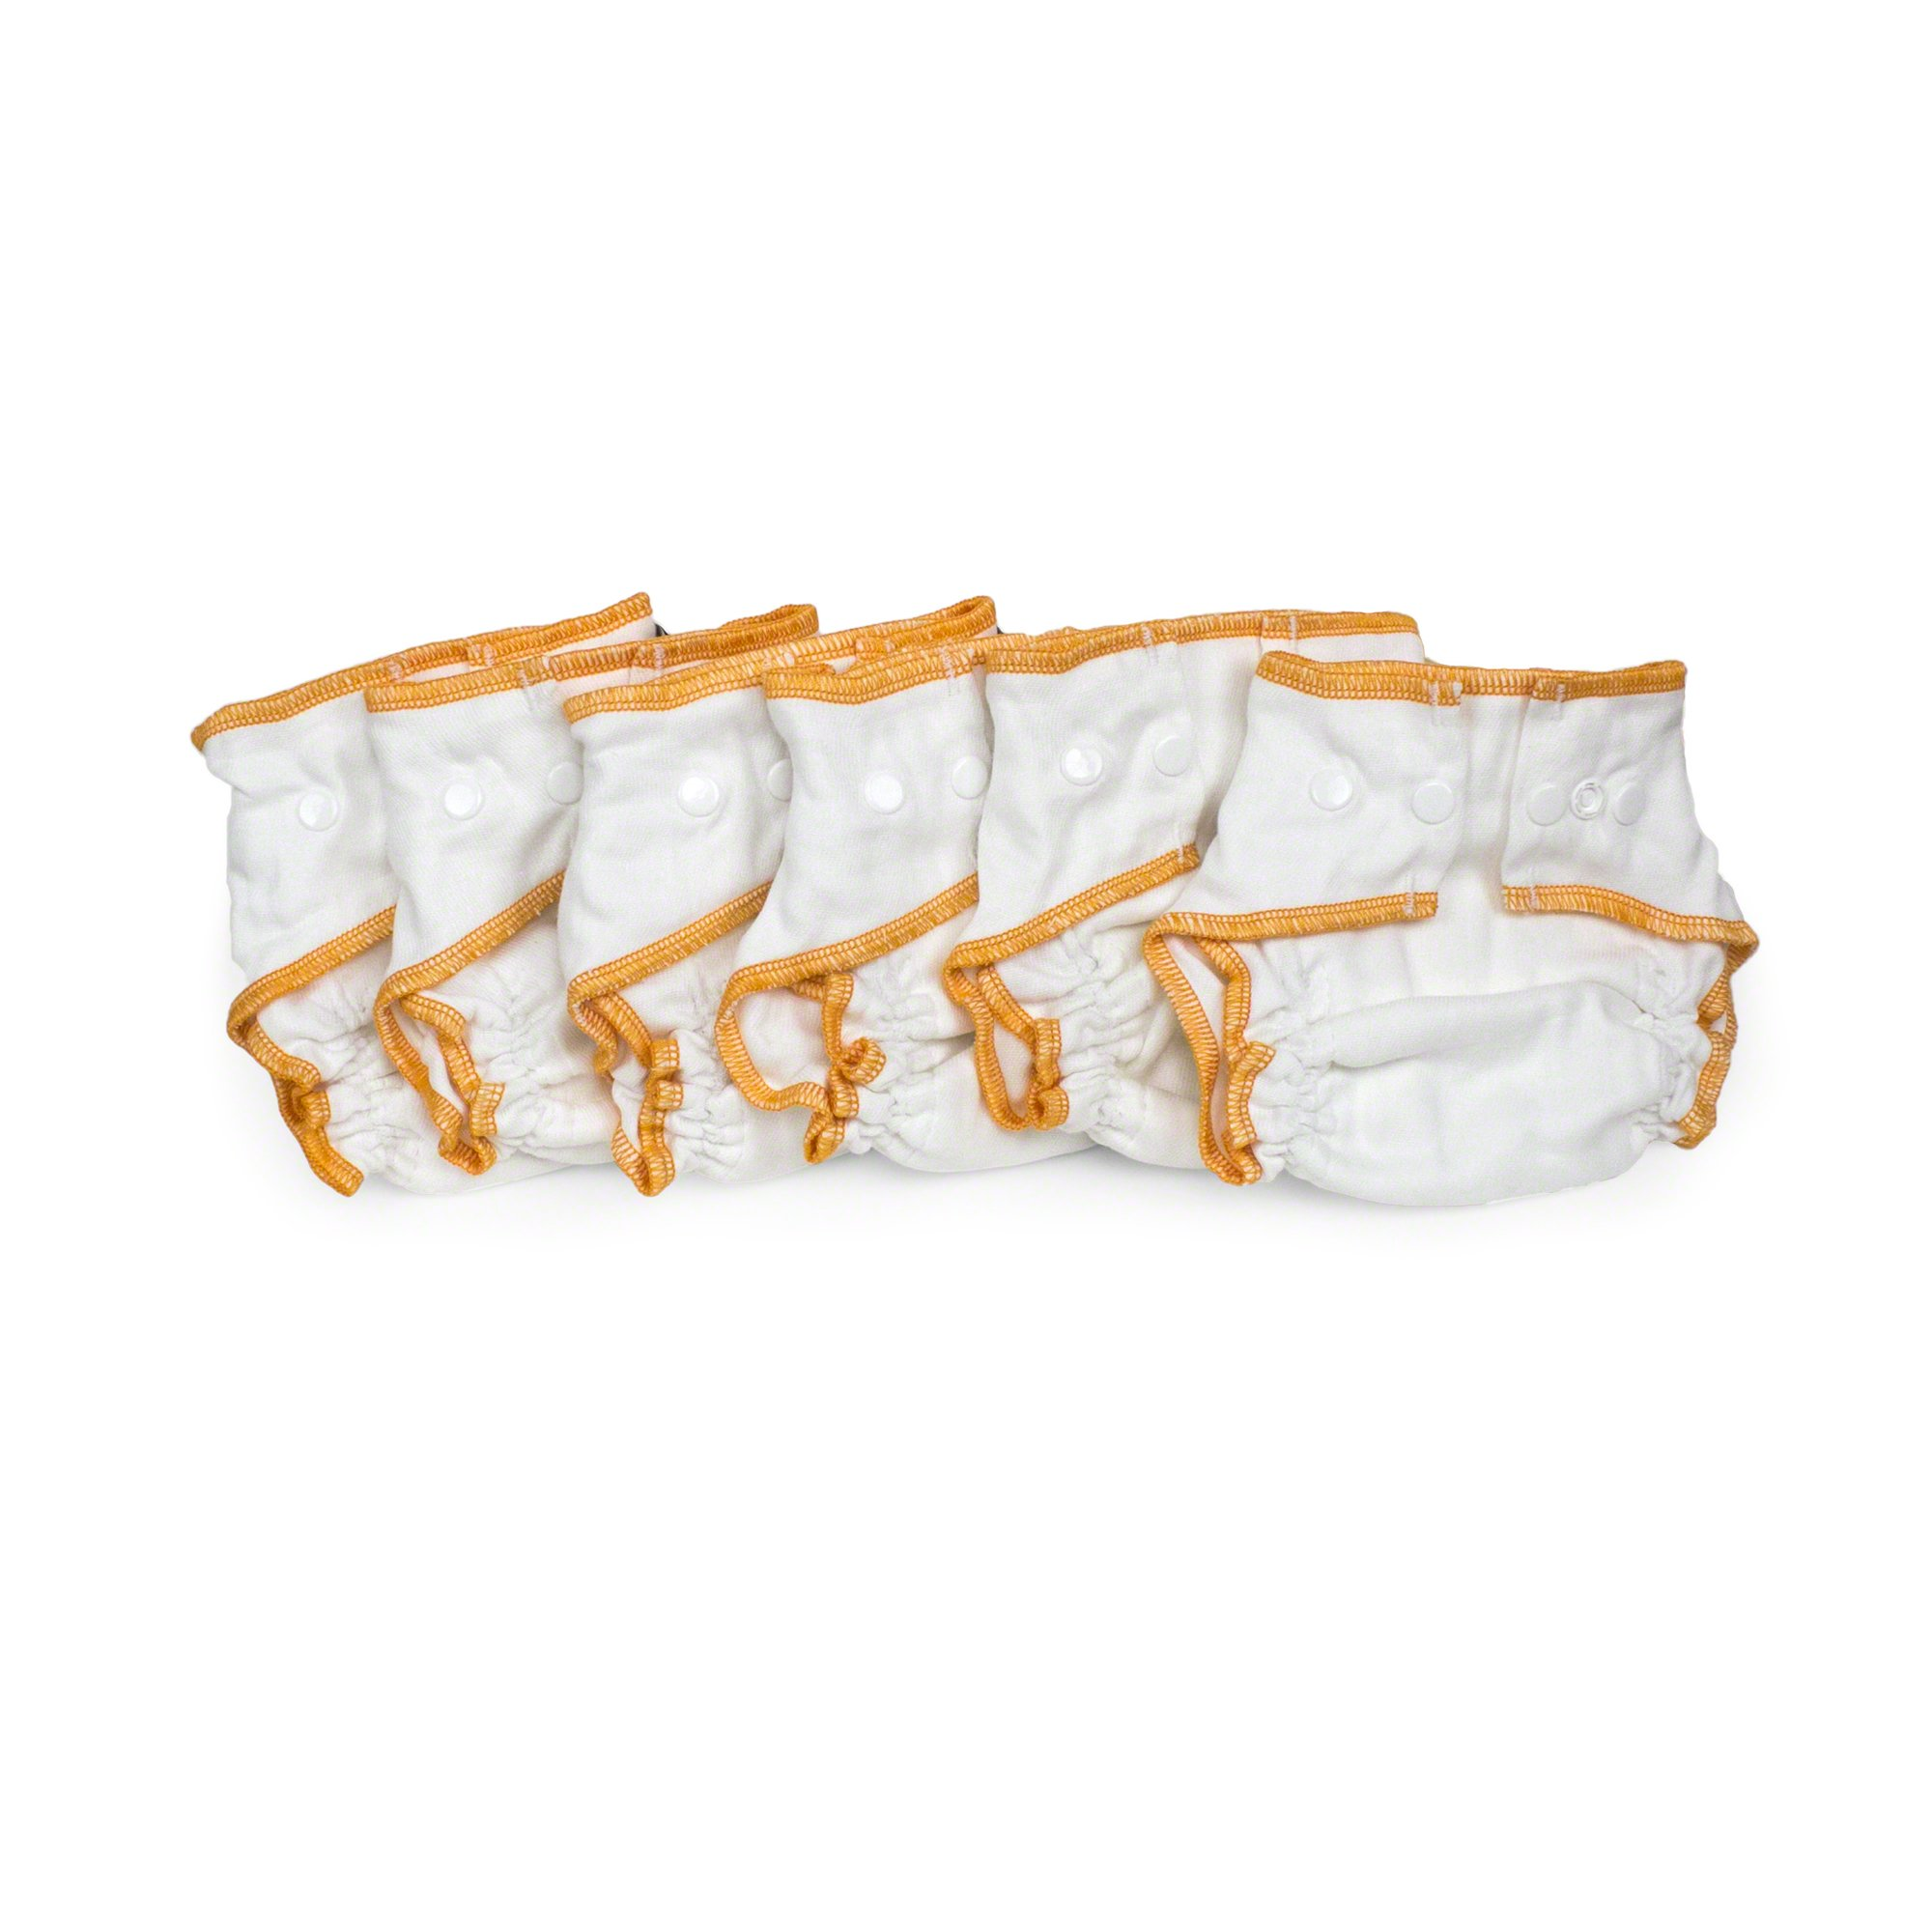 Cloth-eez Workhorse Fitted Diaper White Snap (Newborn 6-pack)